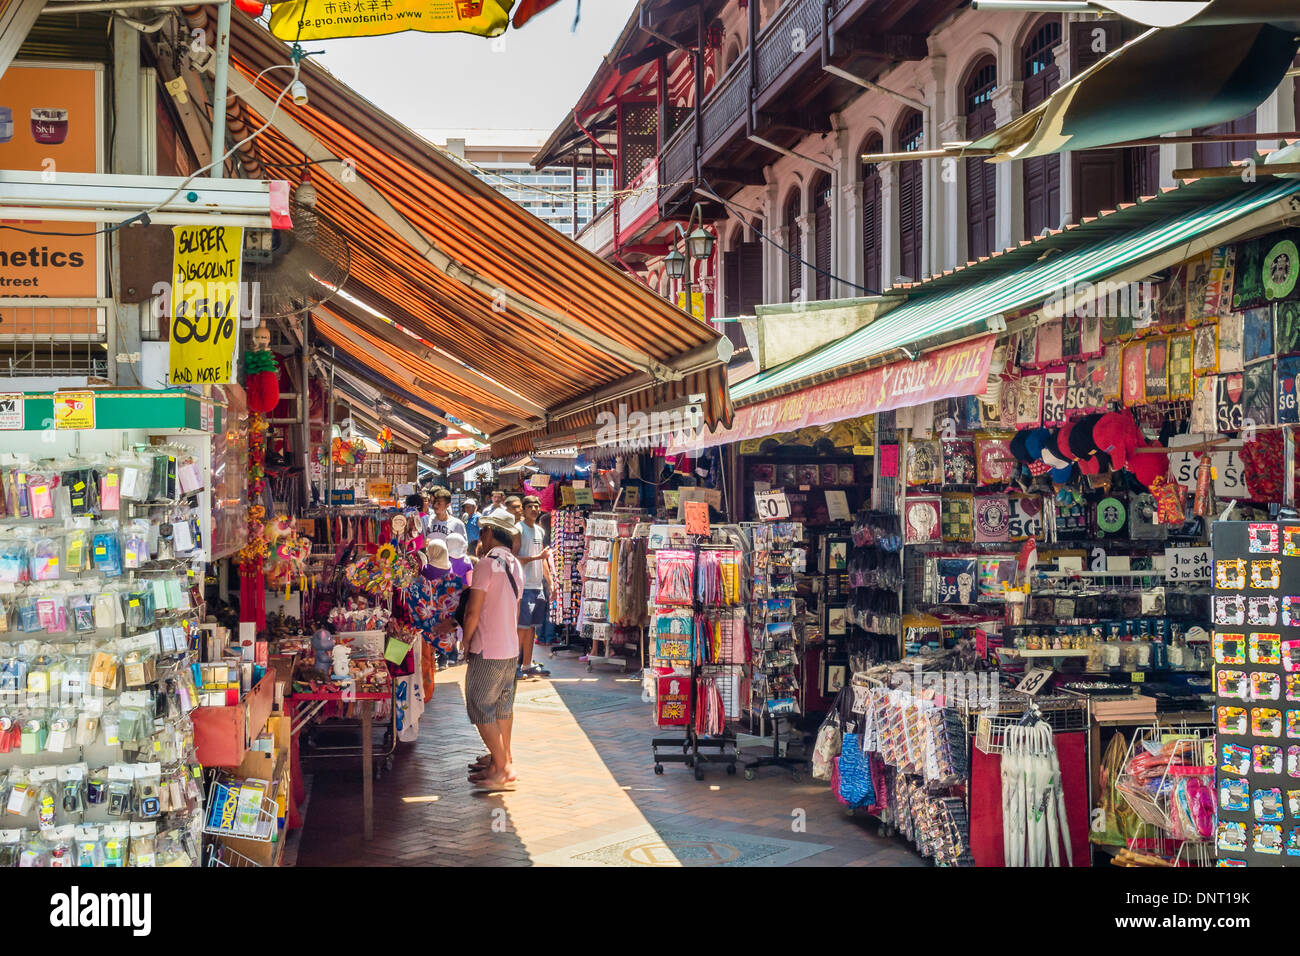 8fb641050 Shops in Chinatown, Singapore Stock Photo: 65066783 - Alamy